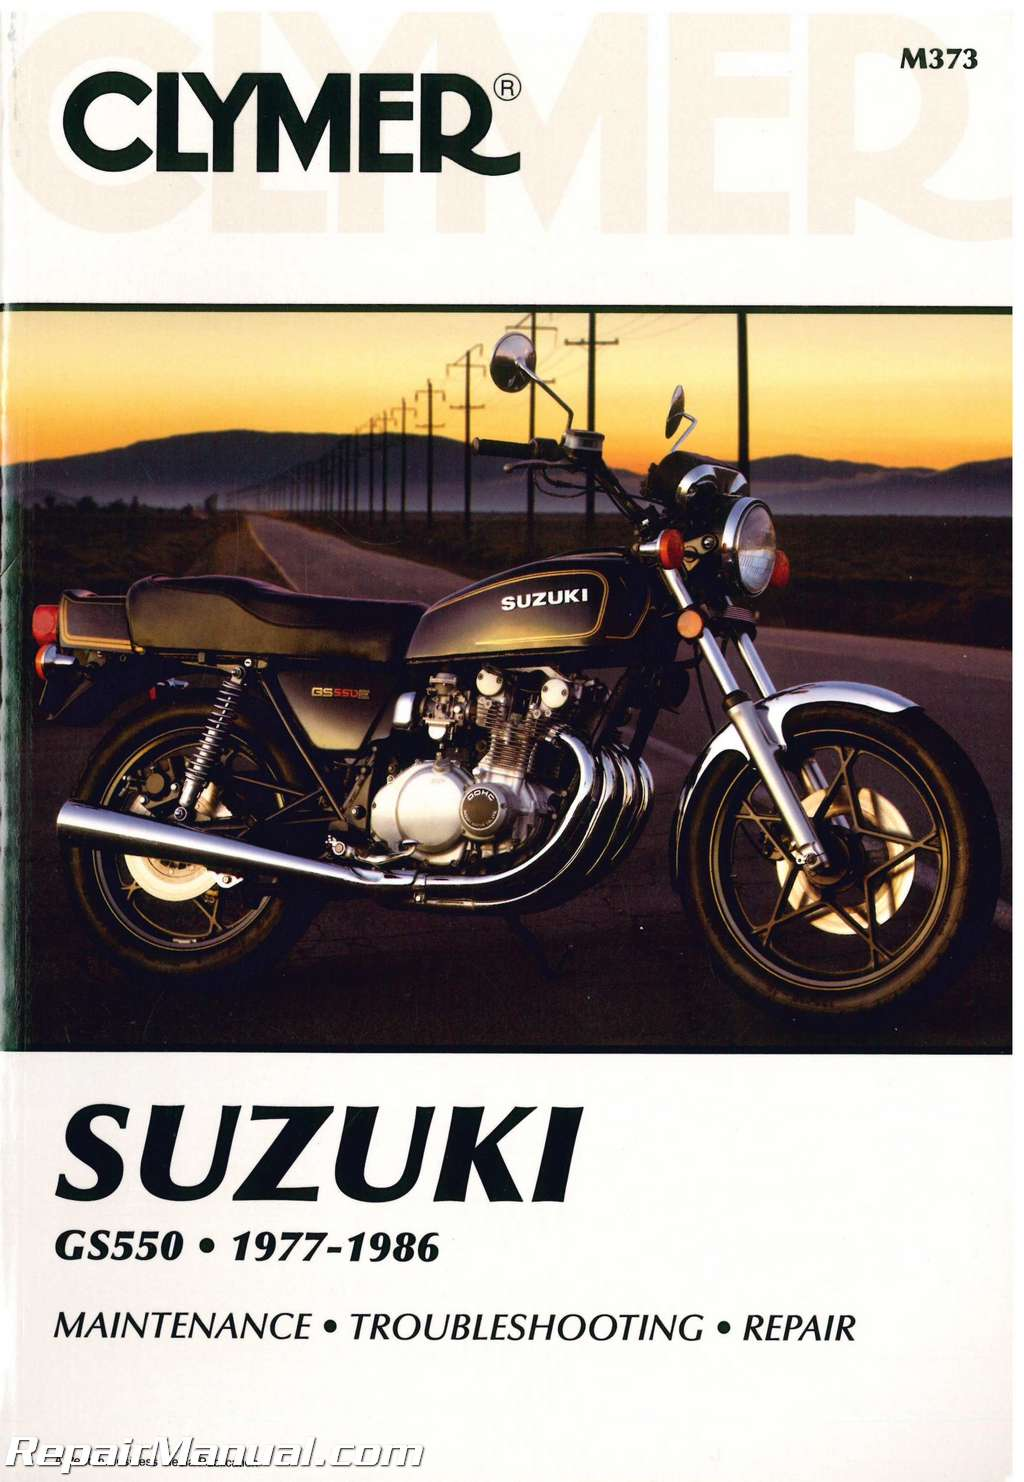 Suzuki Gs Clymer Motorcycle Service Repair Manual on 1977 Suzuki Gs 550